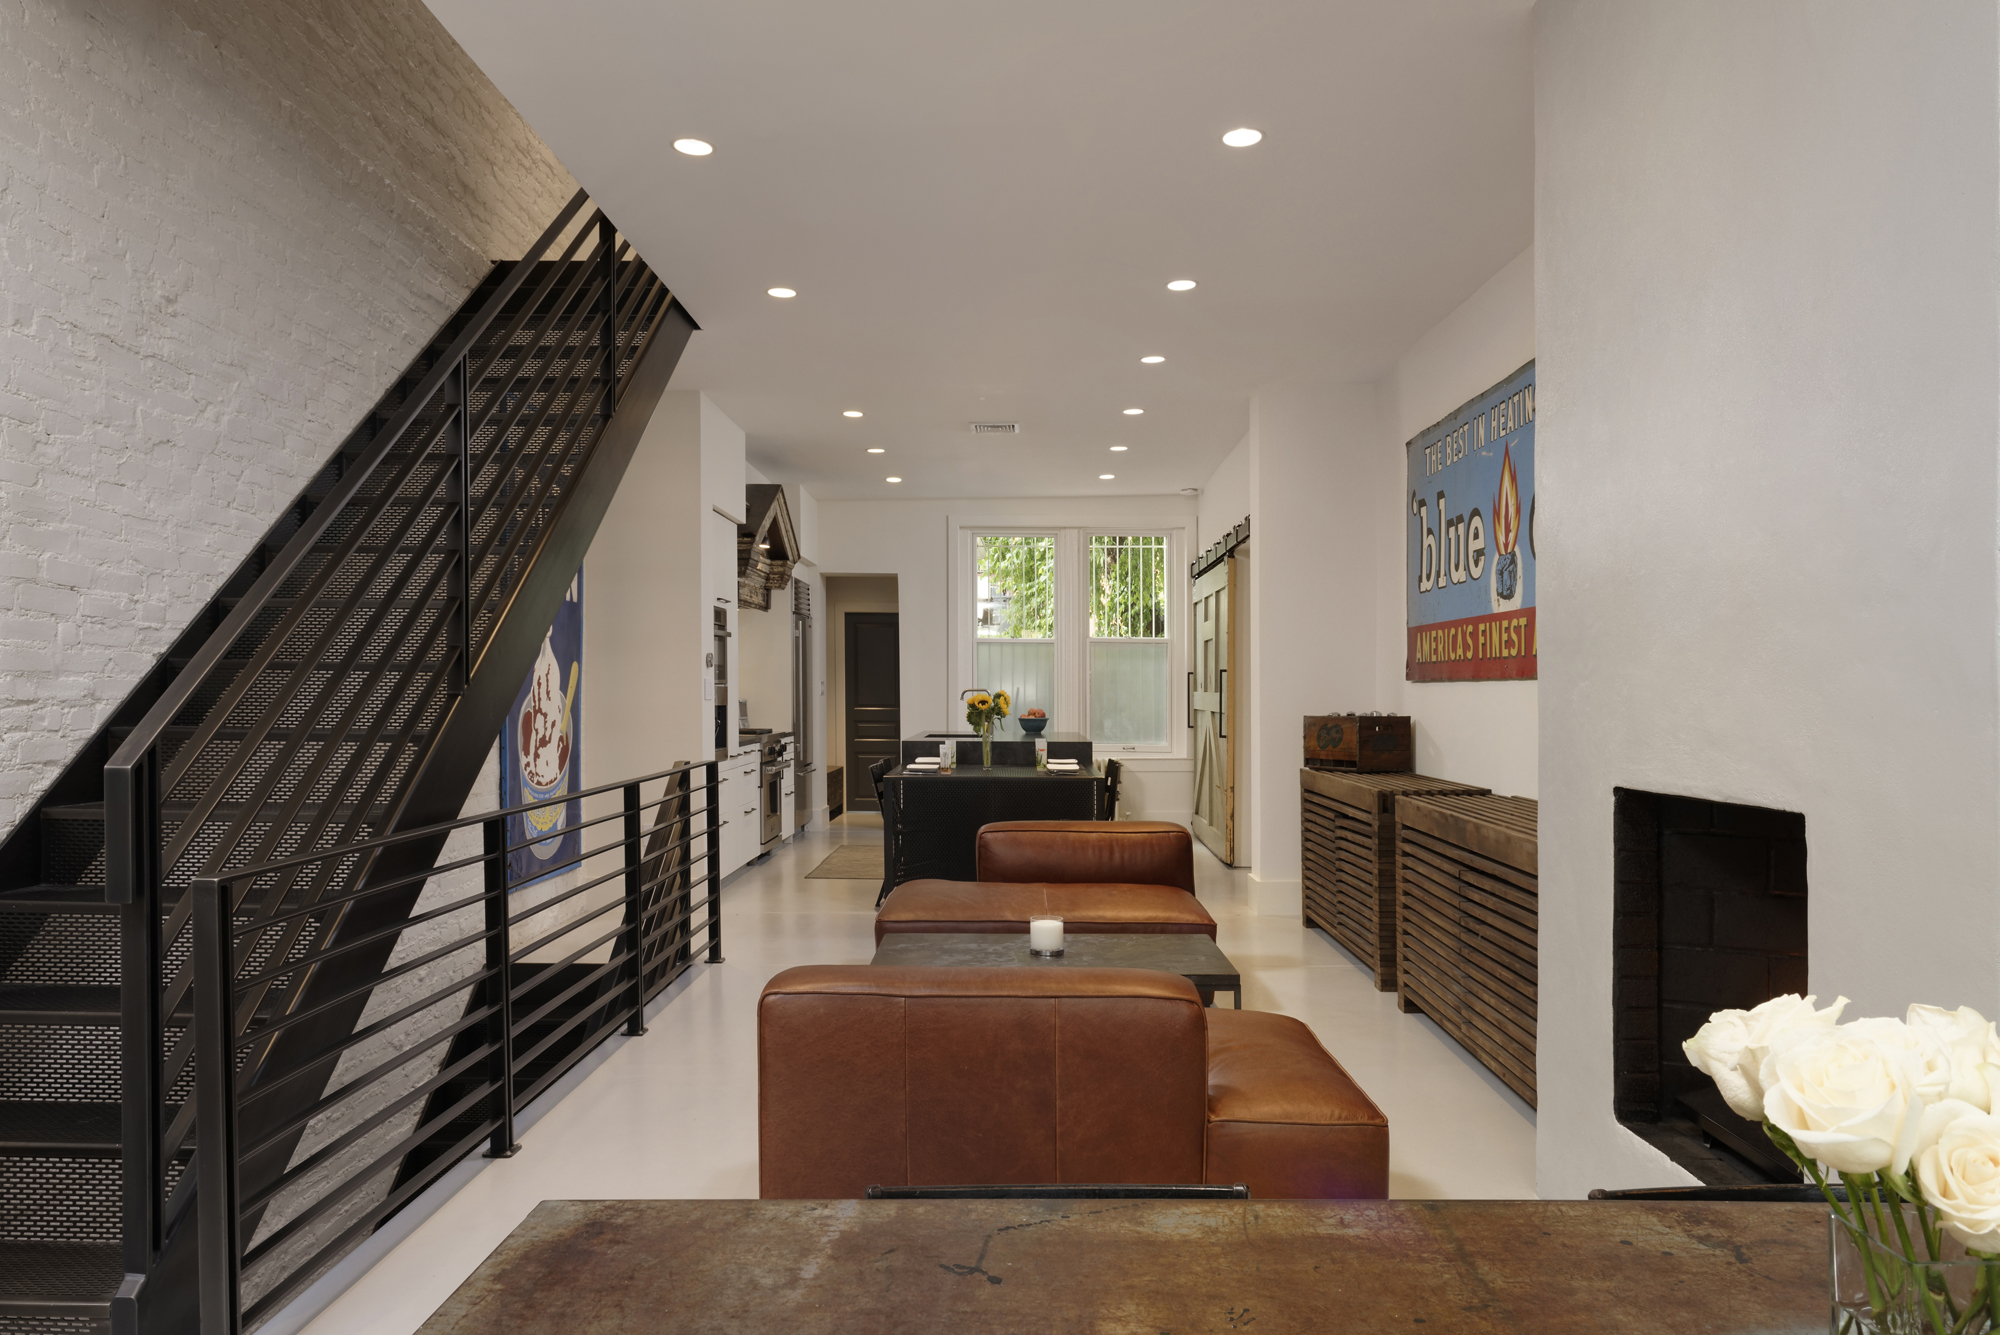 Industrial chic row home renovation in dupont circle dc - Interior design ideas for row houses ...